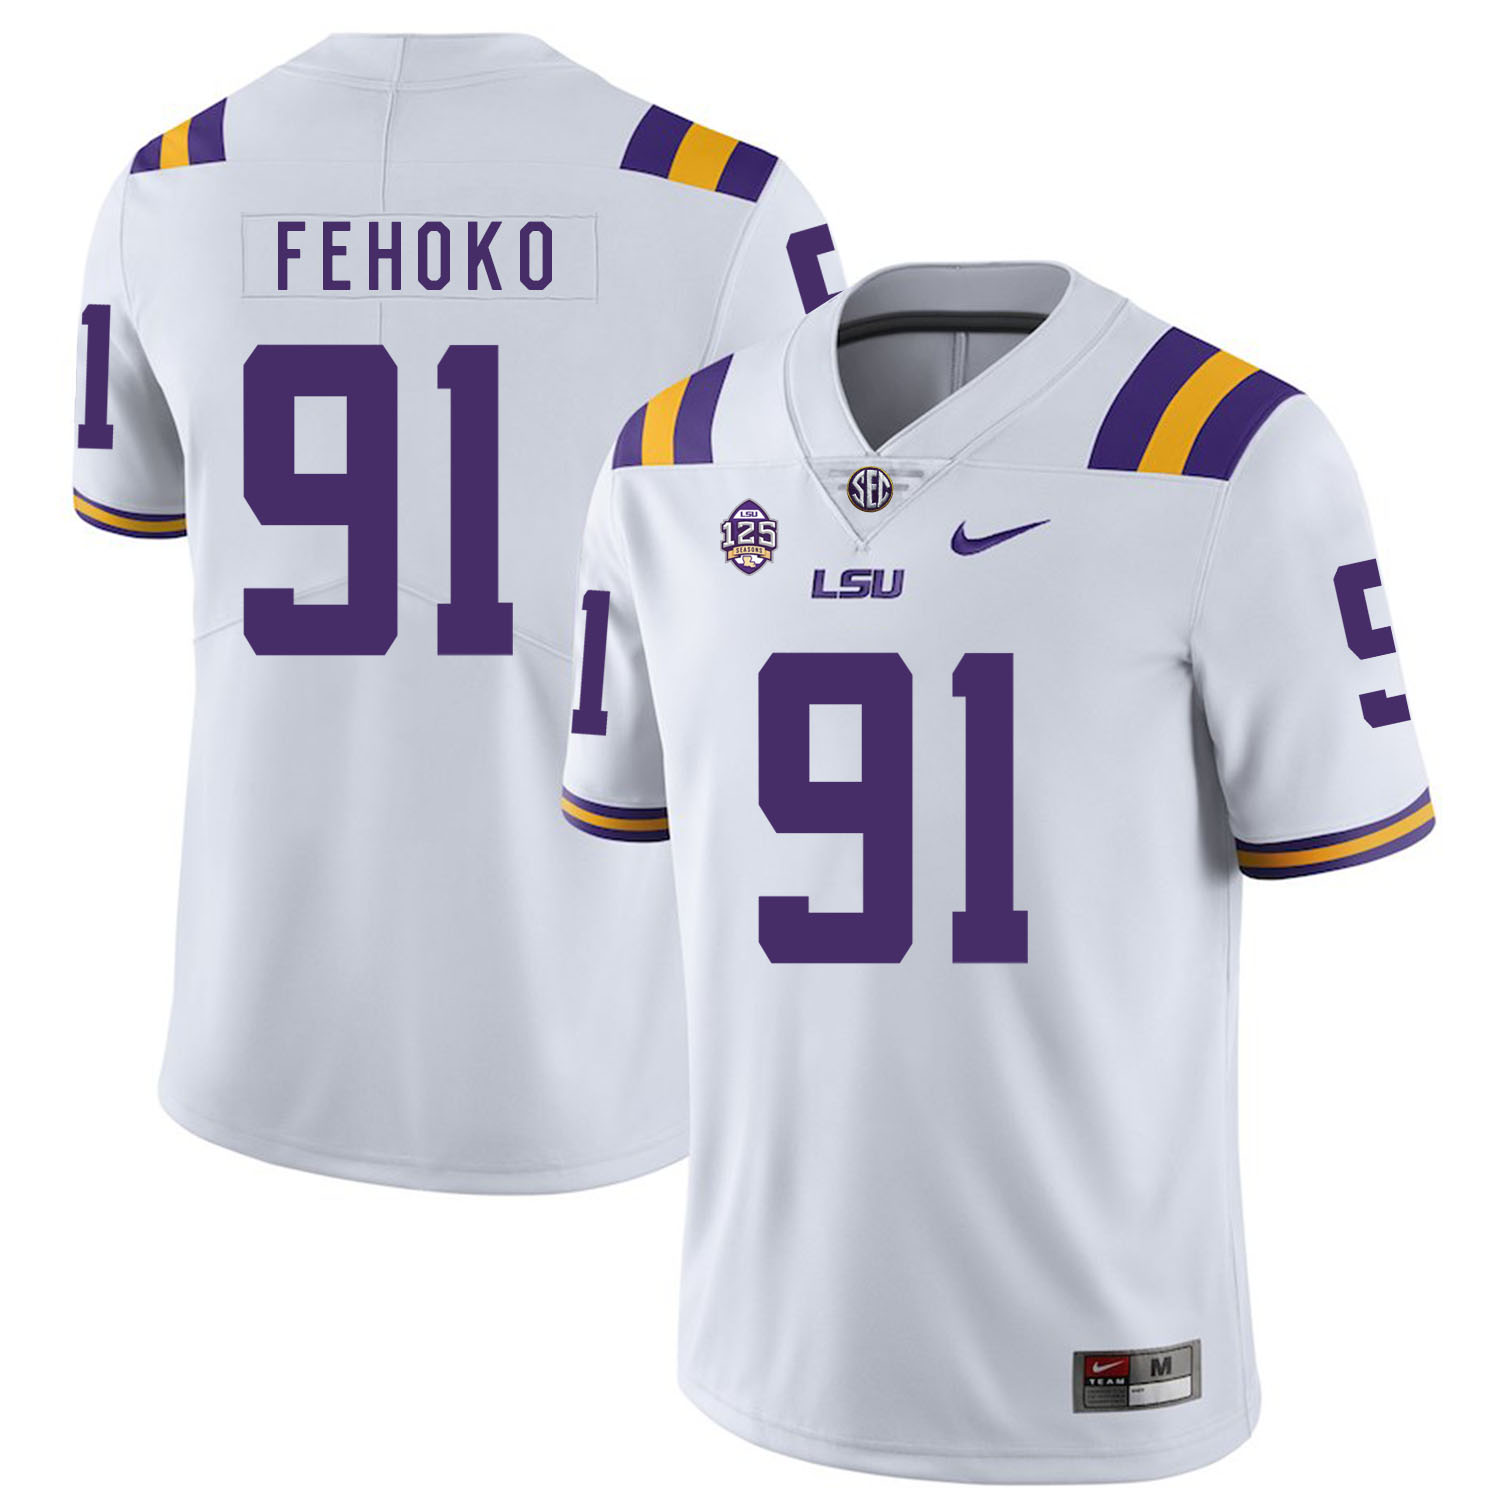 LSU Tigers 91 Beriden Fehoko White Nike College Football Jersey